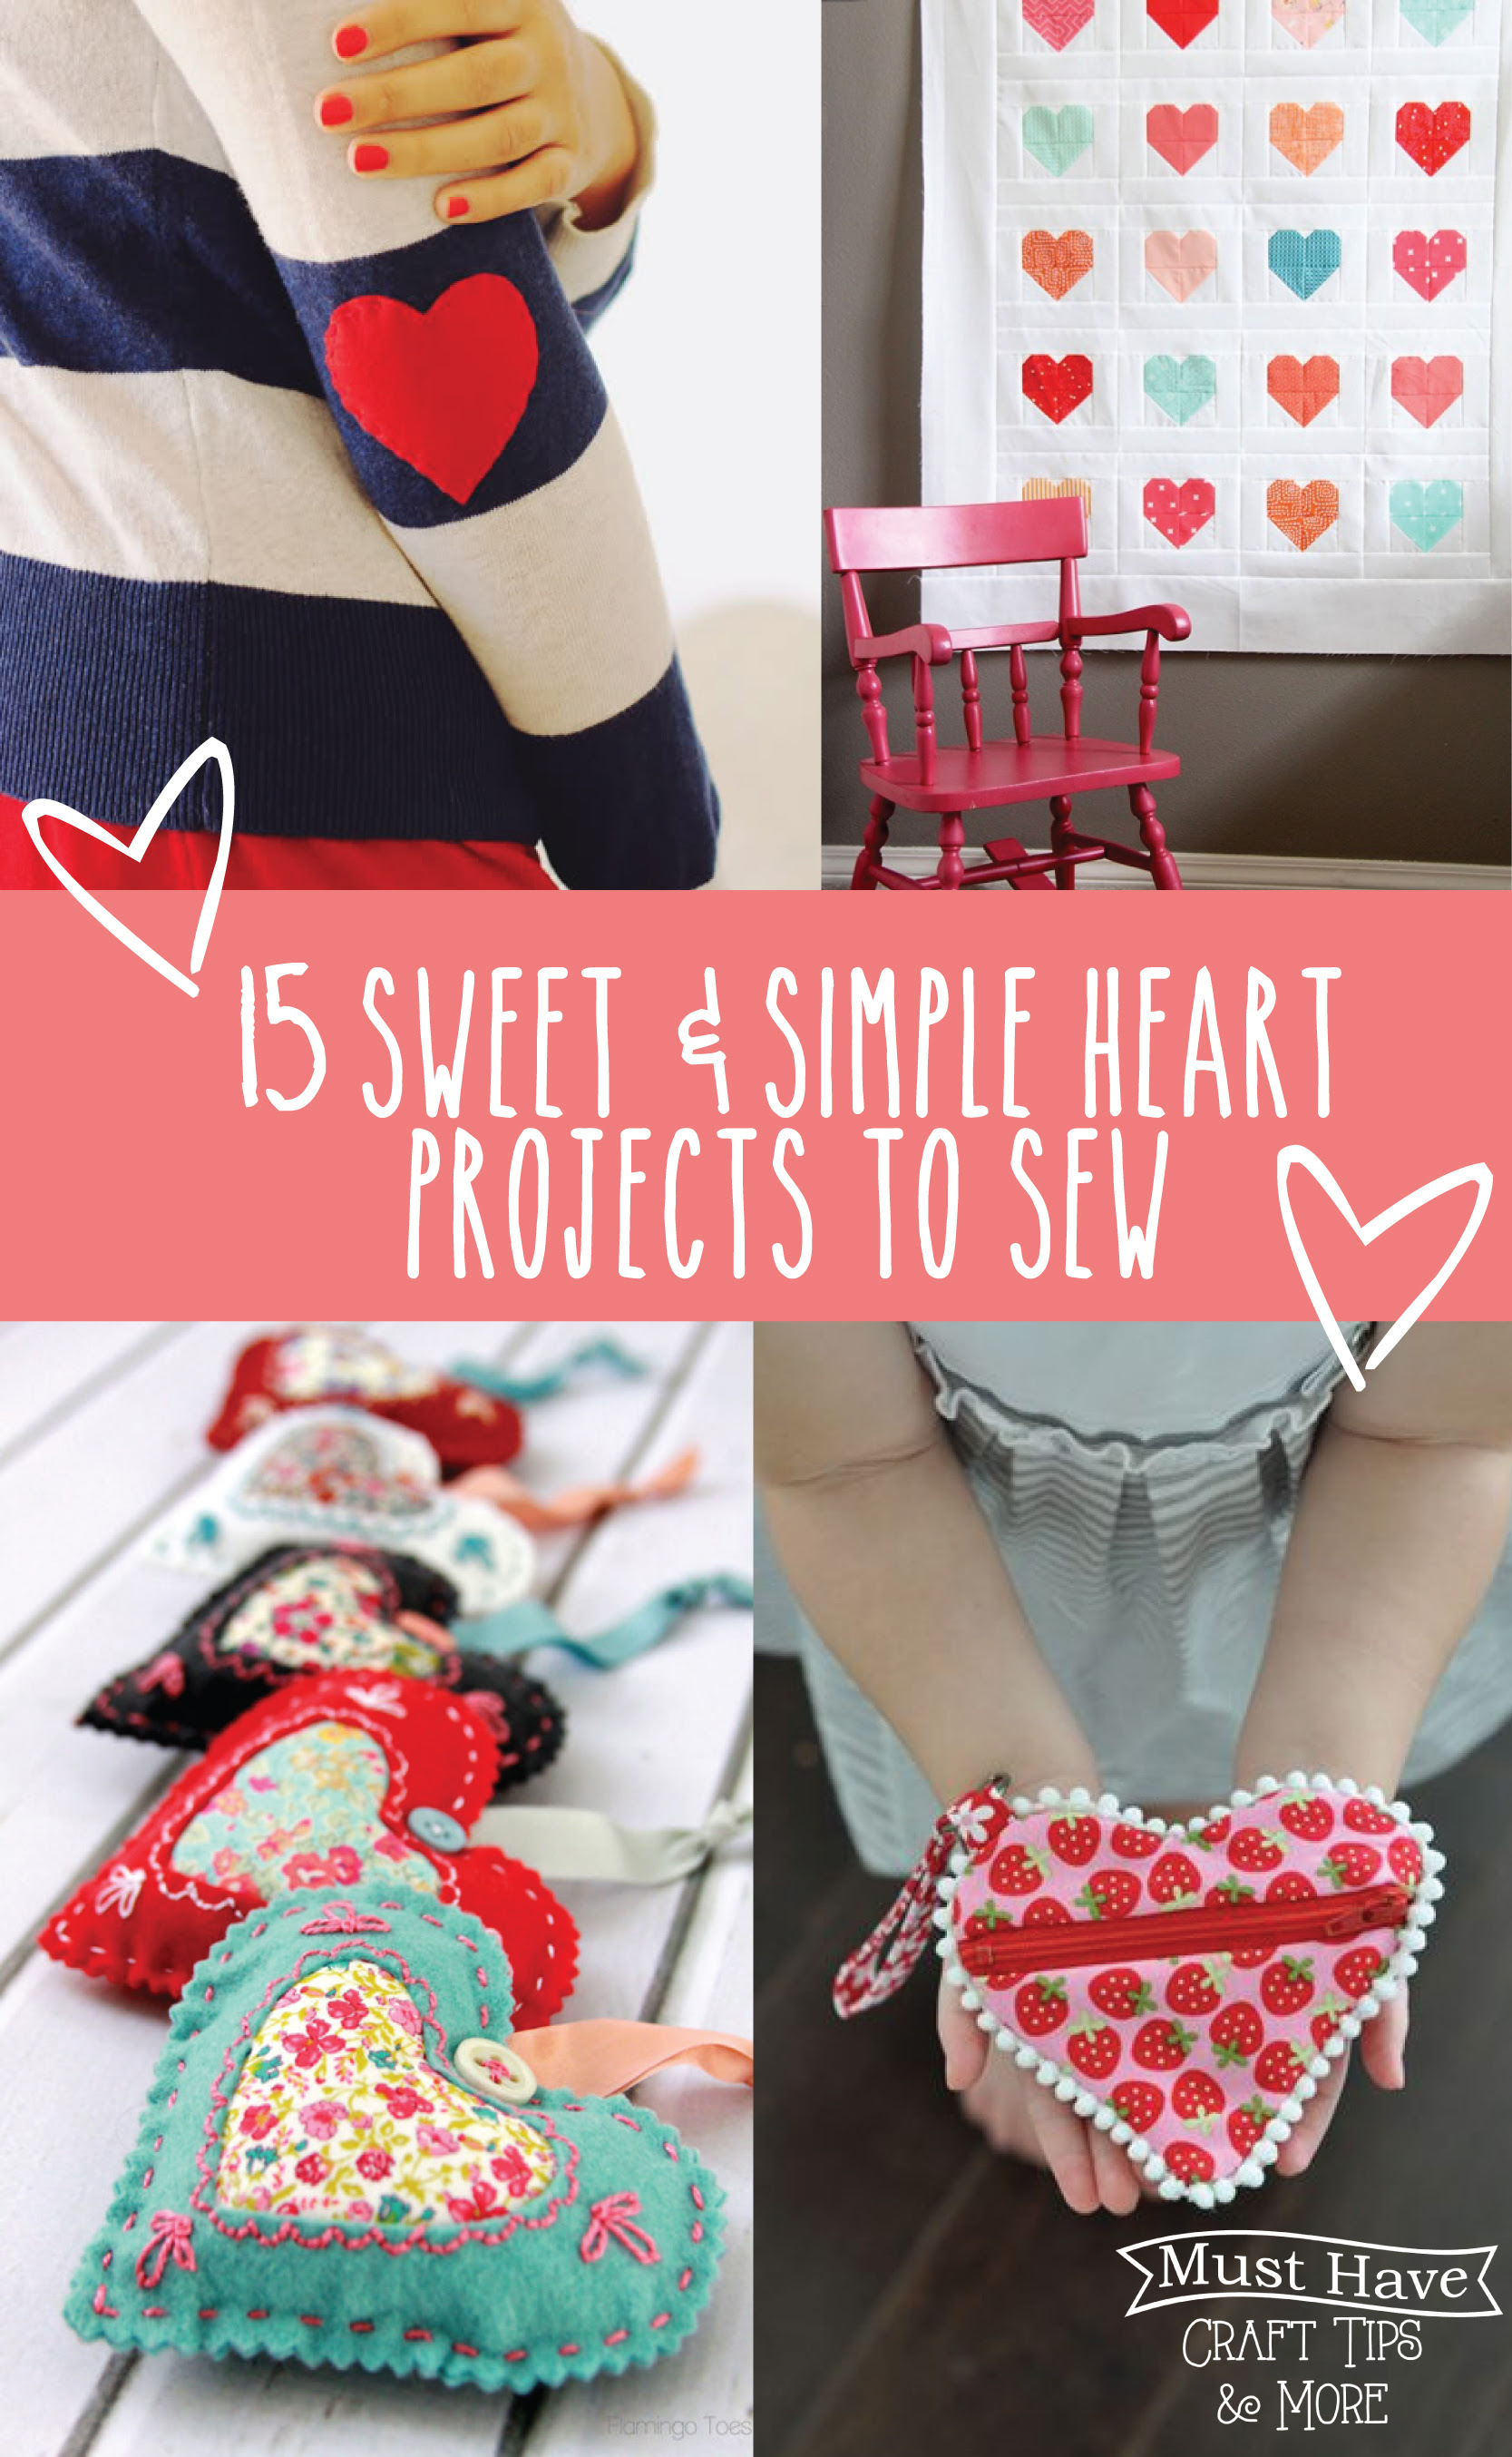 http://www.aglimpseinsideblog.com/2017/01/mhct-15-sweet-simple-heart-projects-to.html